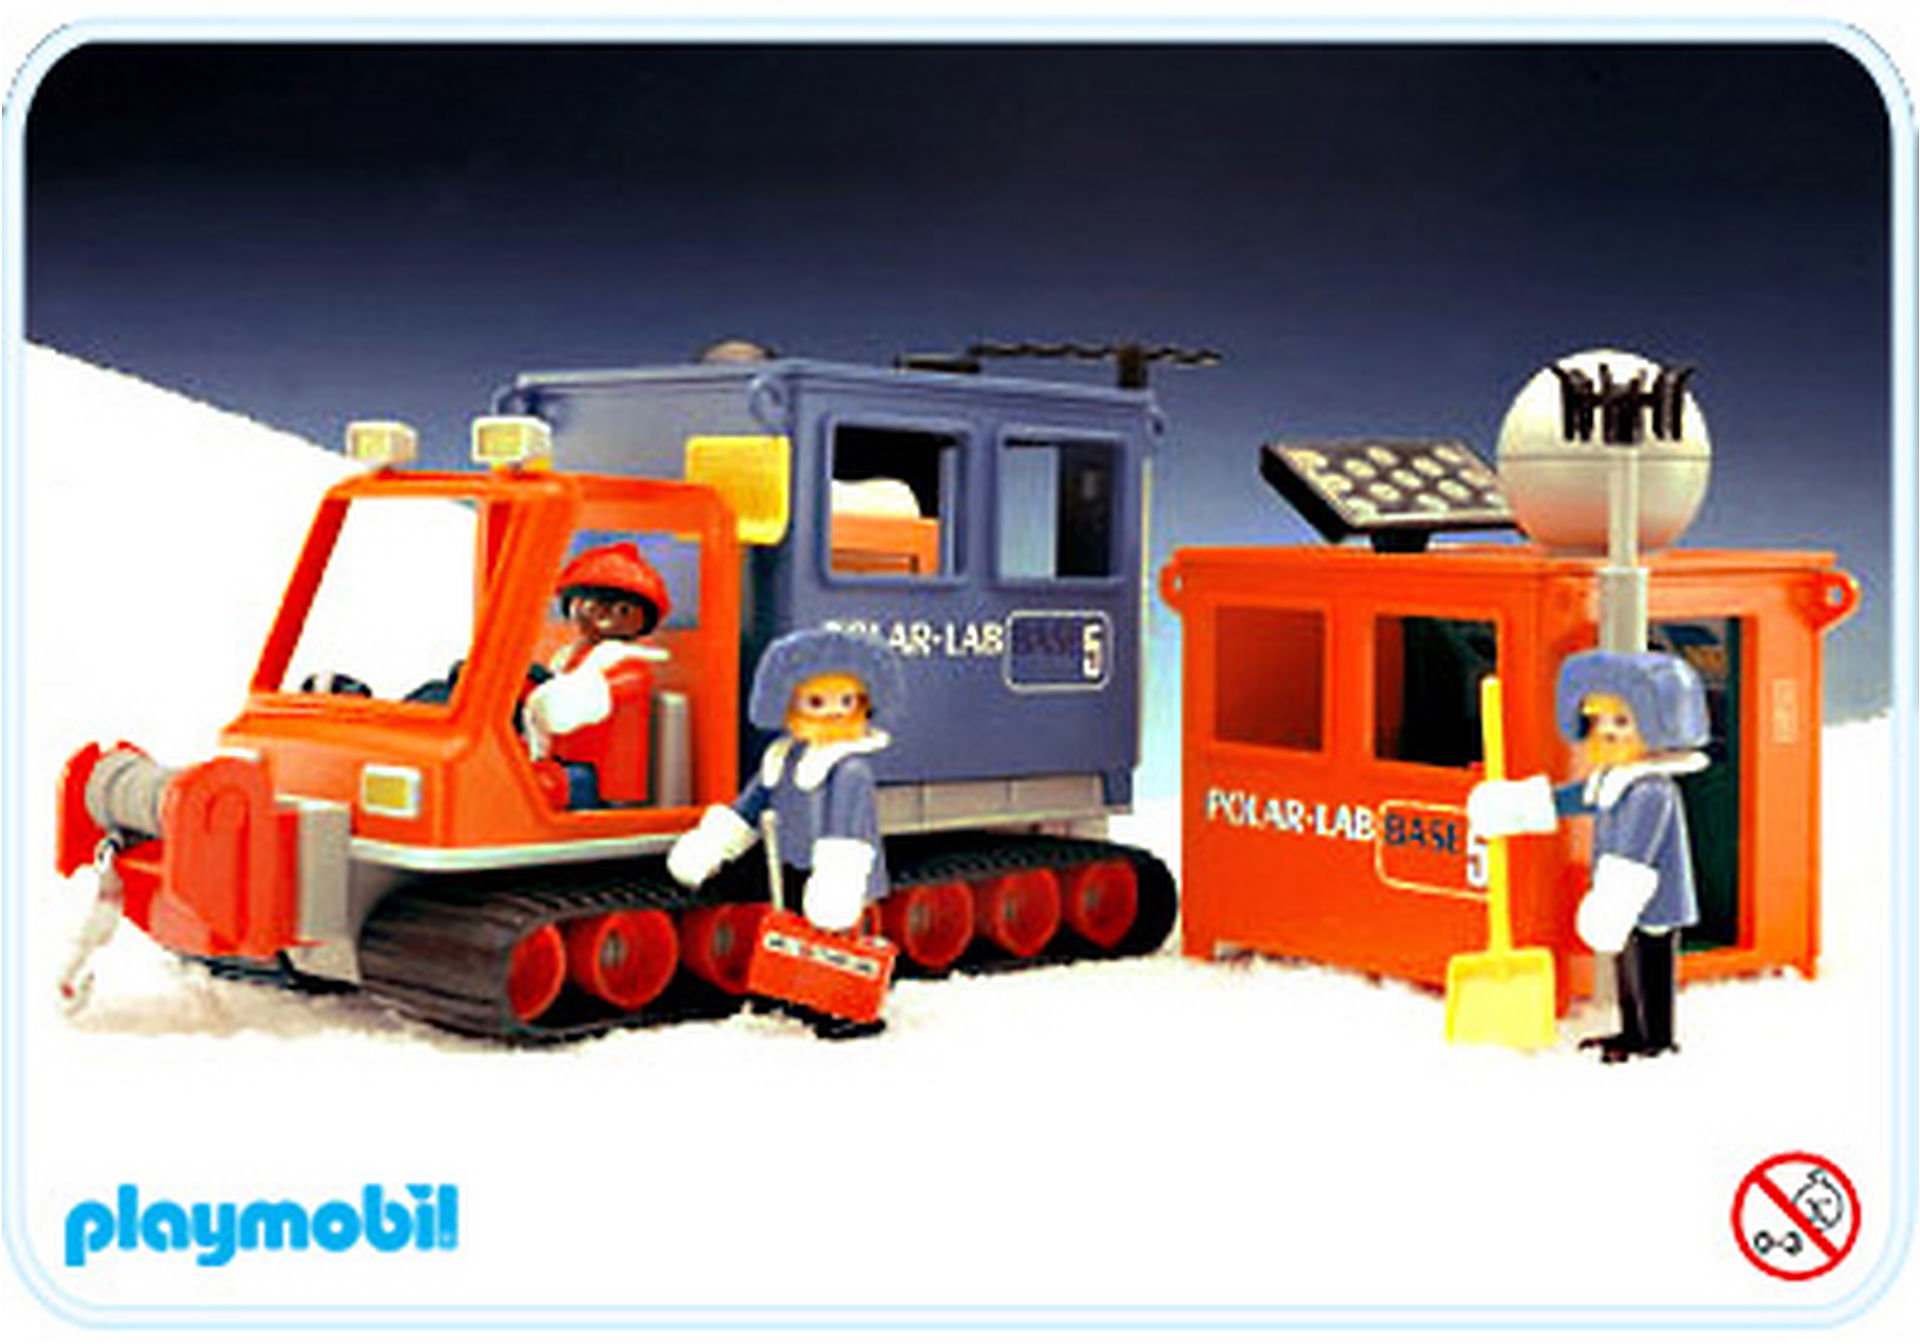 http://media.playmobil.com/i/playmobil/3460-A_product_detail/laboratoire polaire